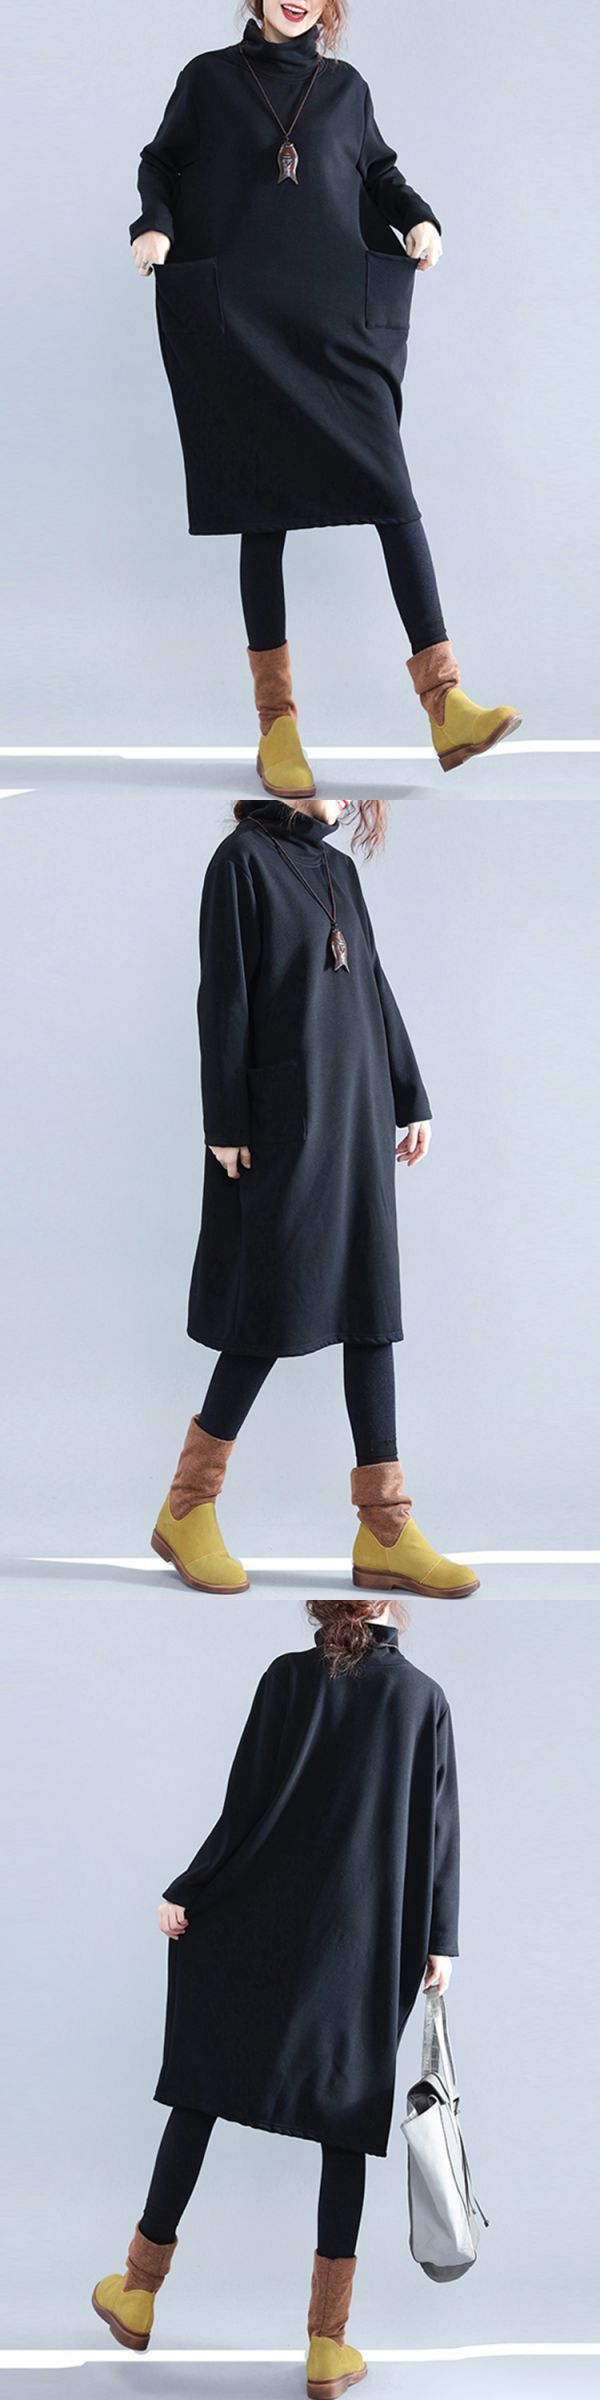 Casual dresses hijab casual women pure color turtleneck pockets long sleeve dresses #casual #dresses #korean #style #casual #dresses #near #me #casual #dresses #royal #blue #jlo #casual #dresses